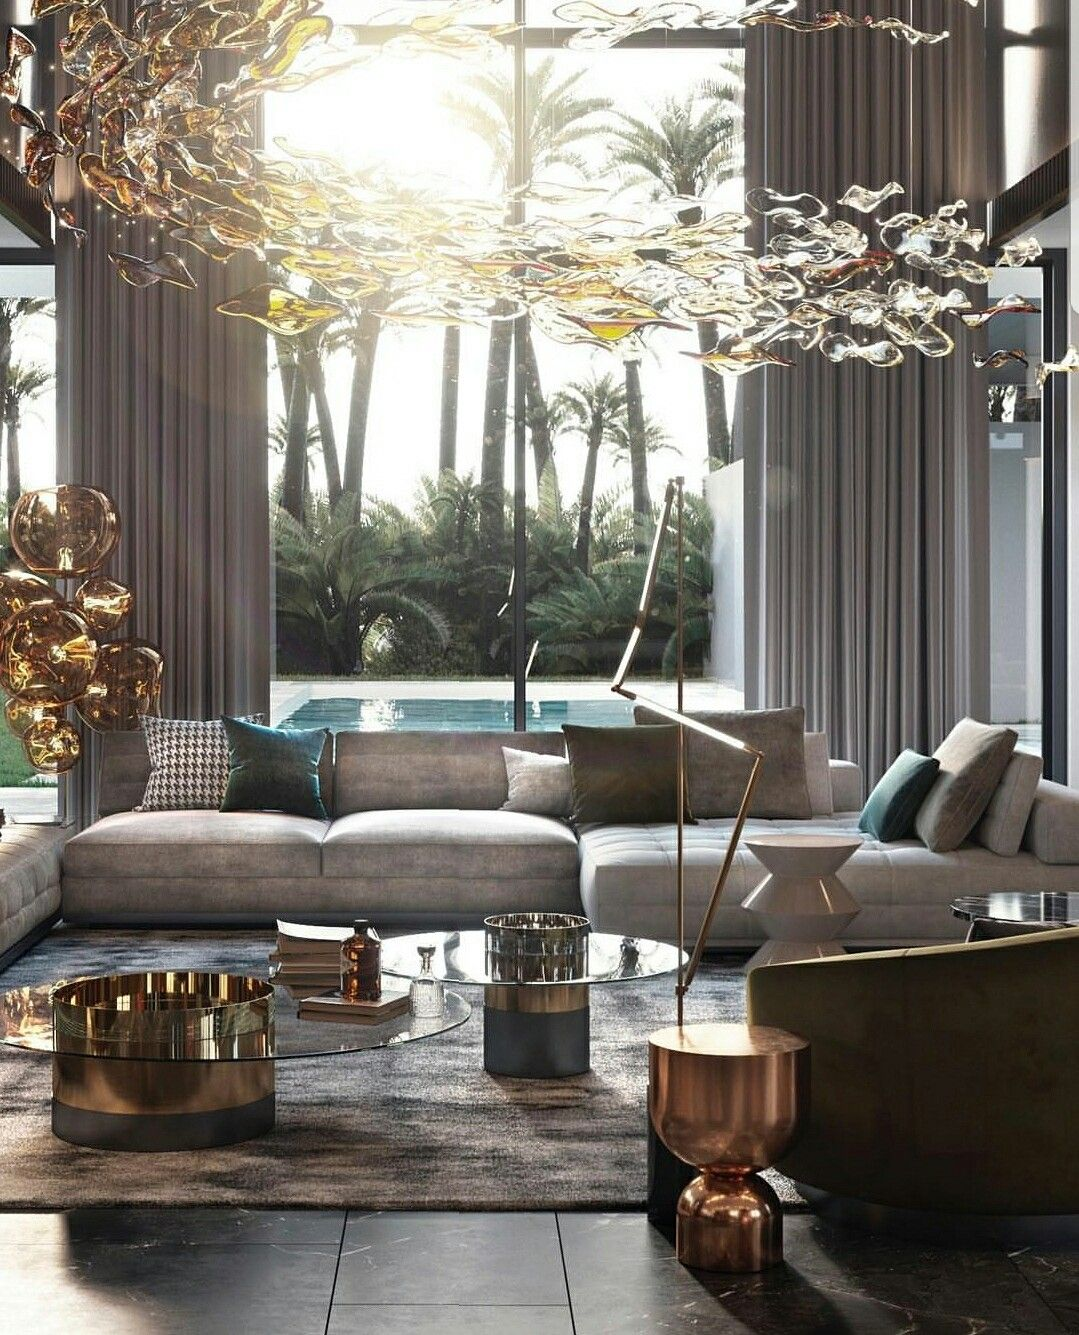 Pin by Zineb Nouba on luxury living  Modern living room interior